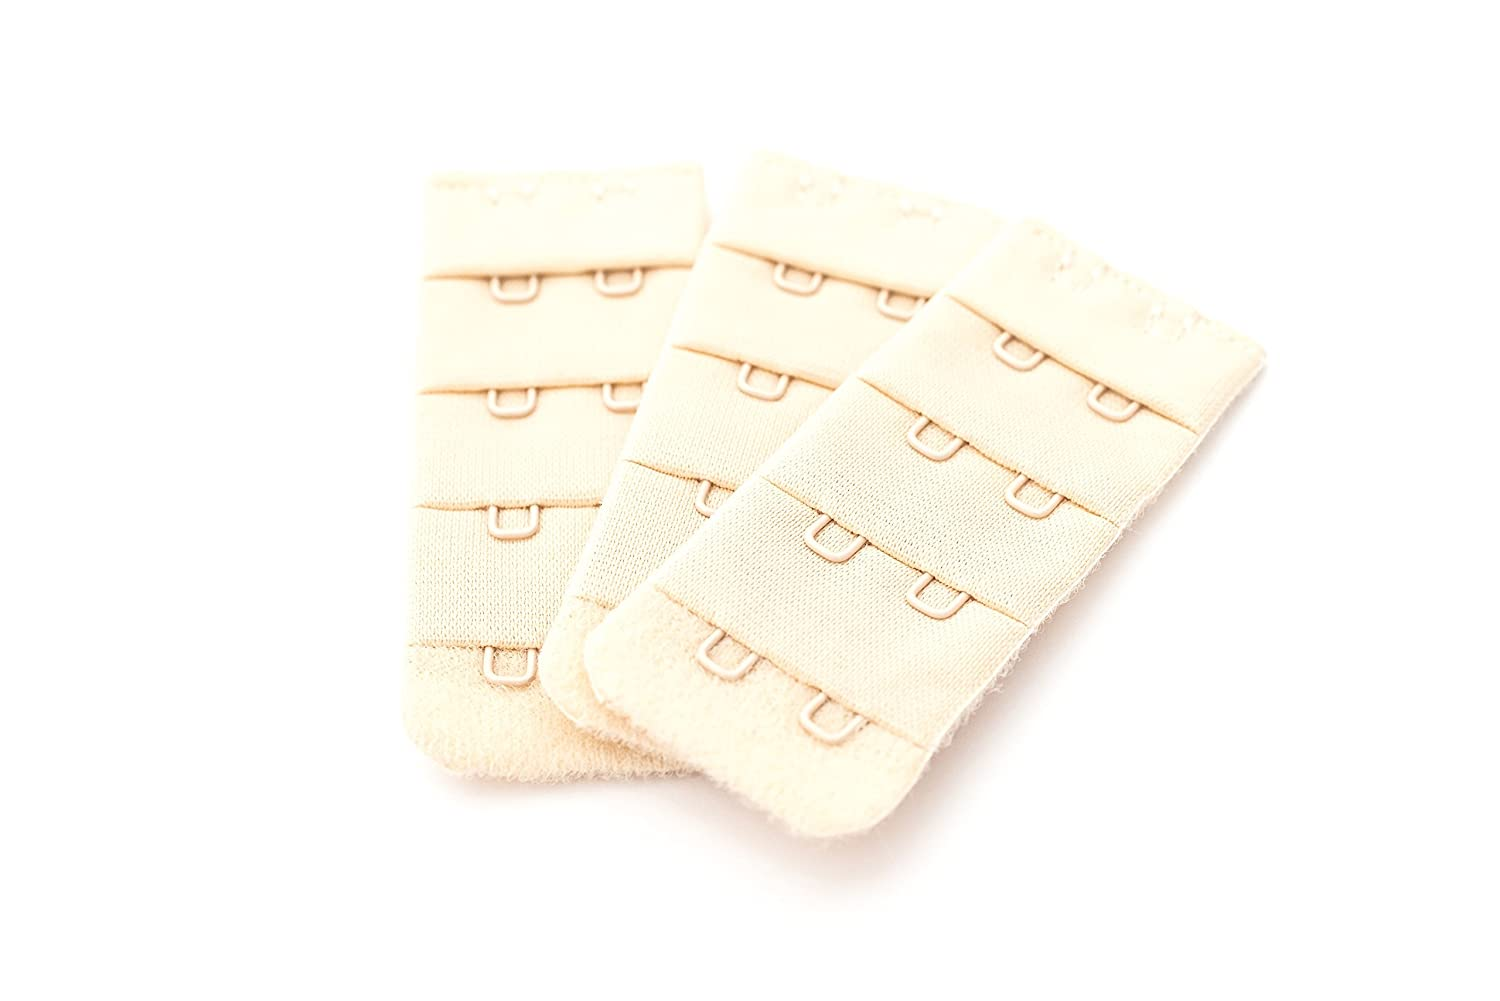 3 Piece pack of Bra Extenders Nude / Beige 2 hook narrow, 2 hook wide, 3 hook or 4 hook